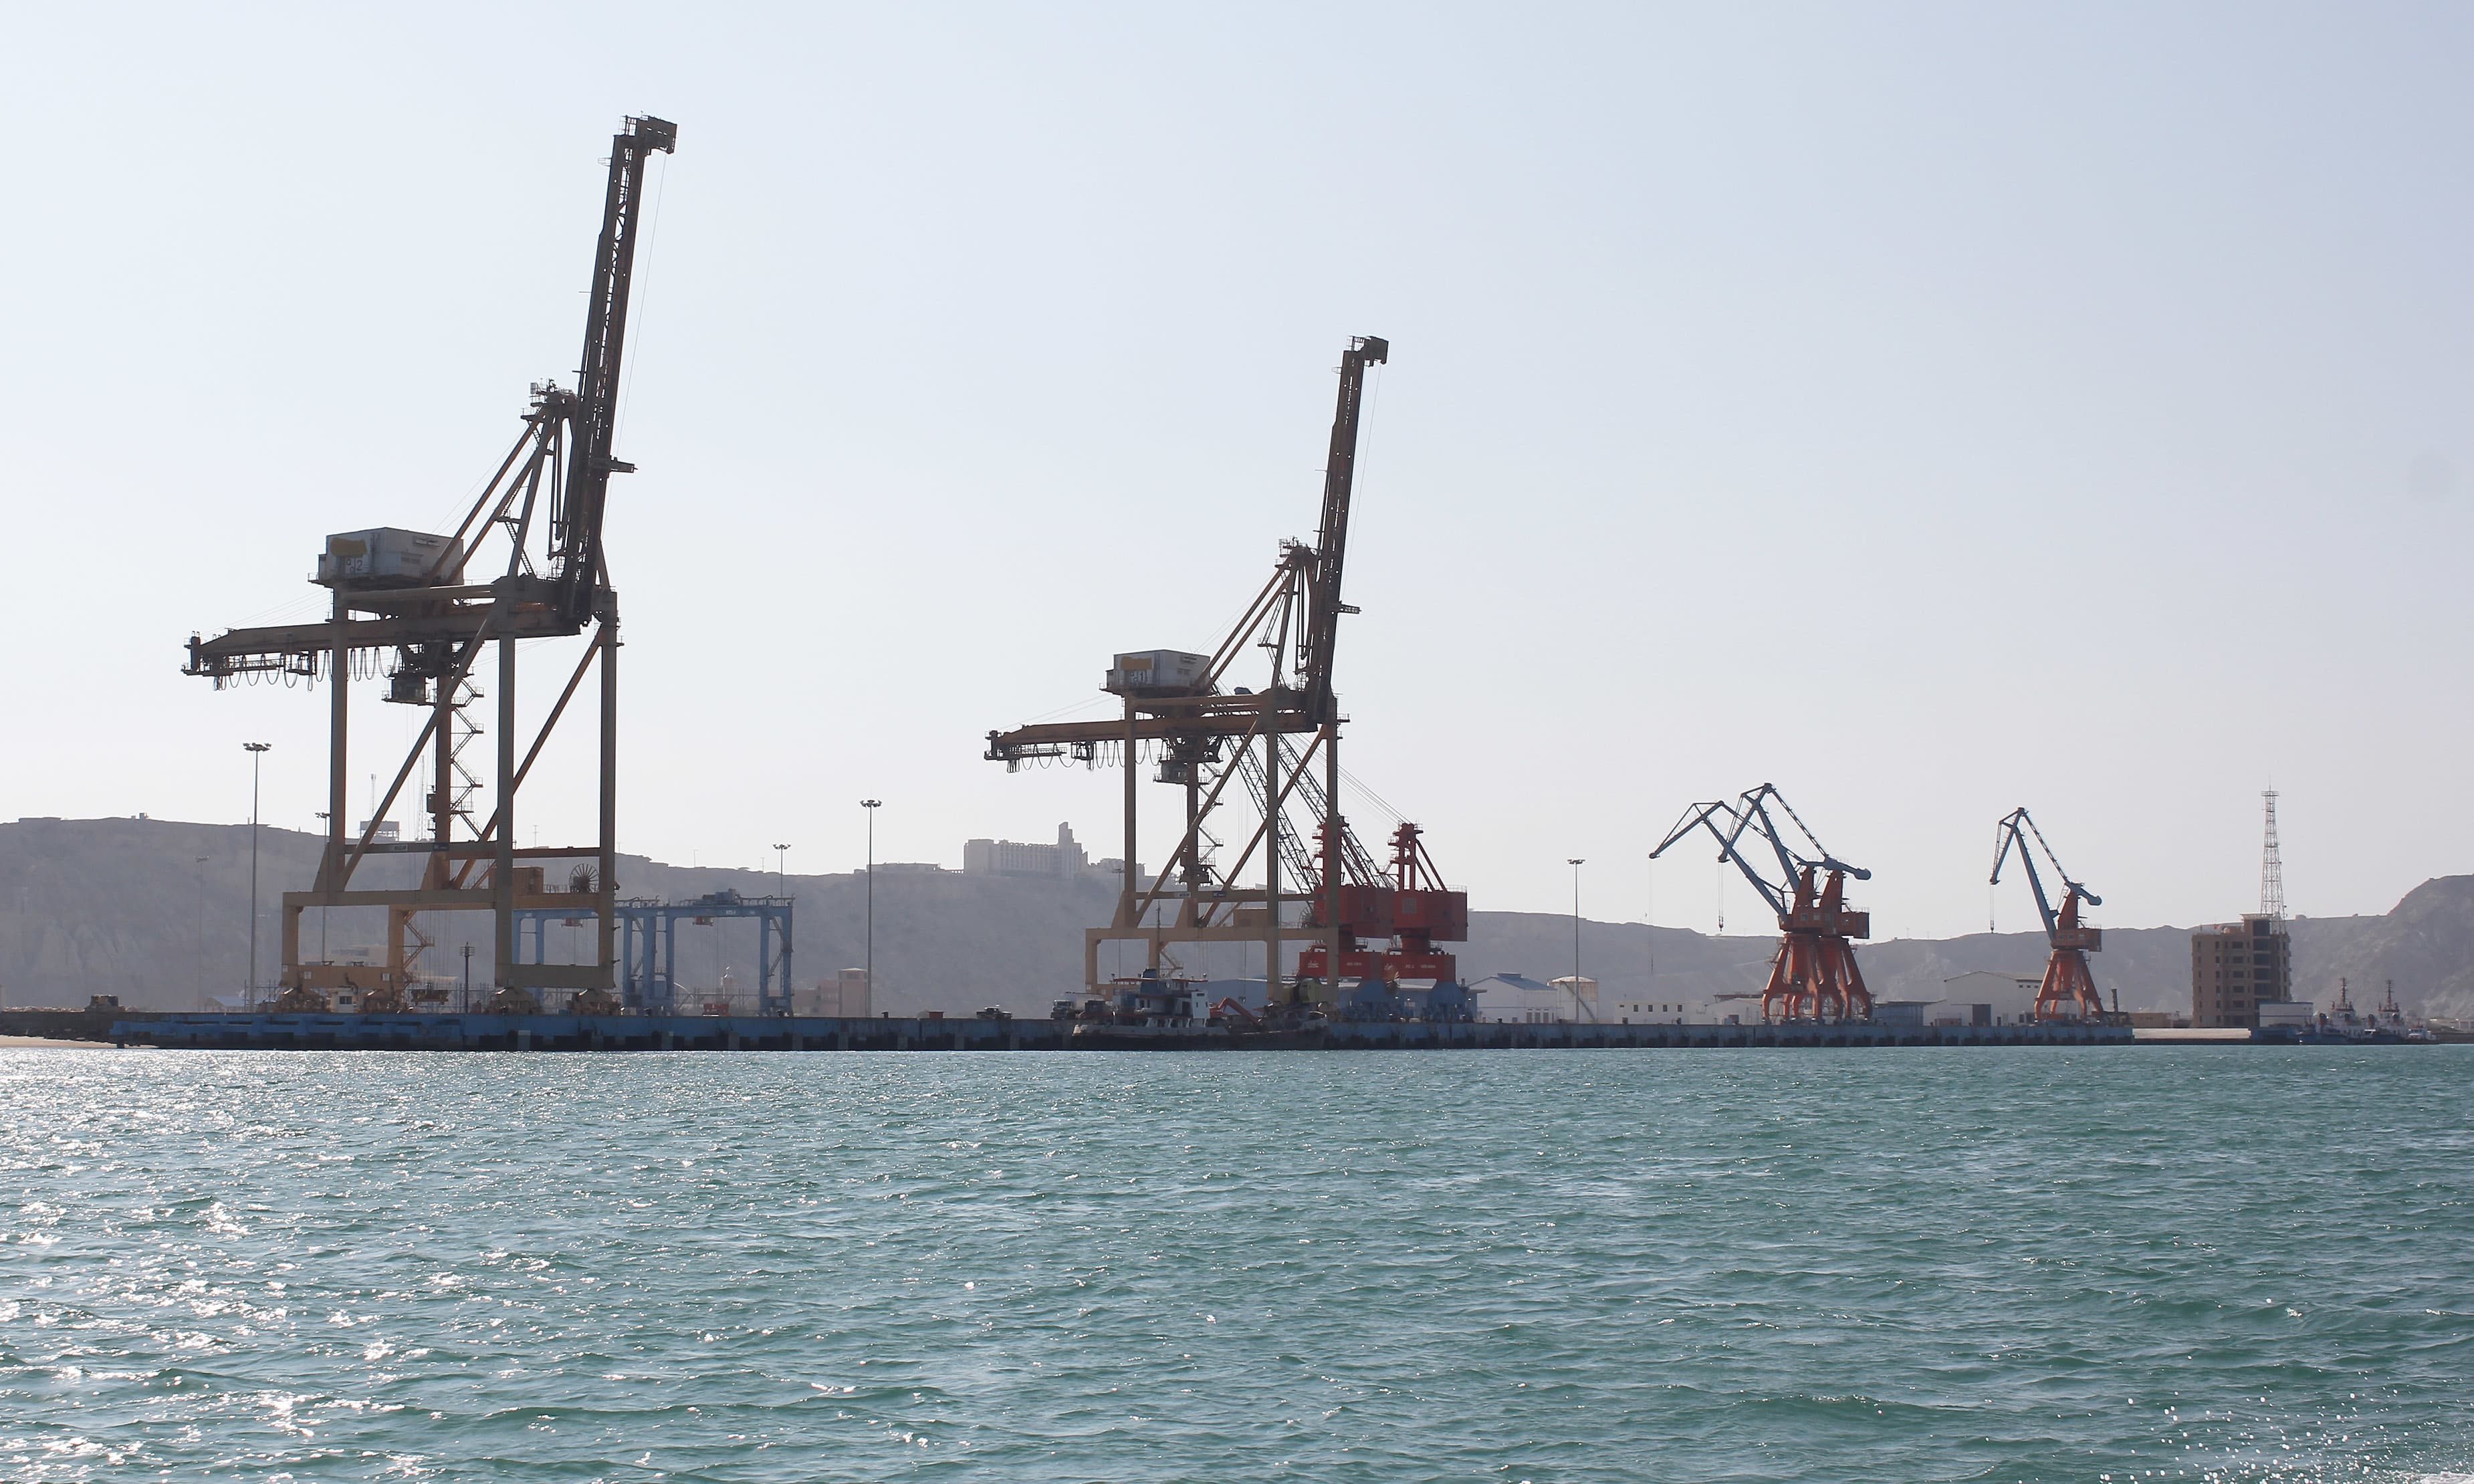 A view of the Gwadar port from the sea.